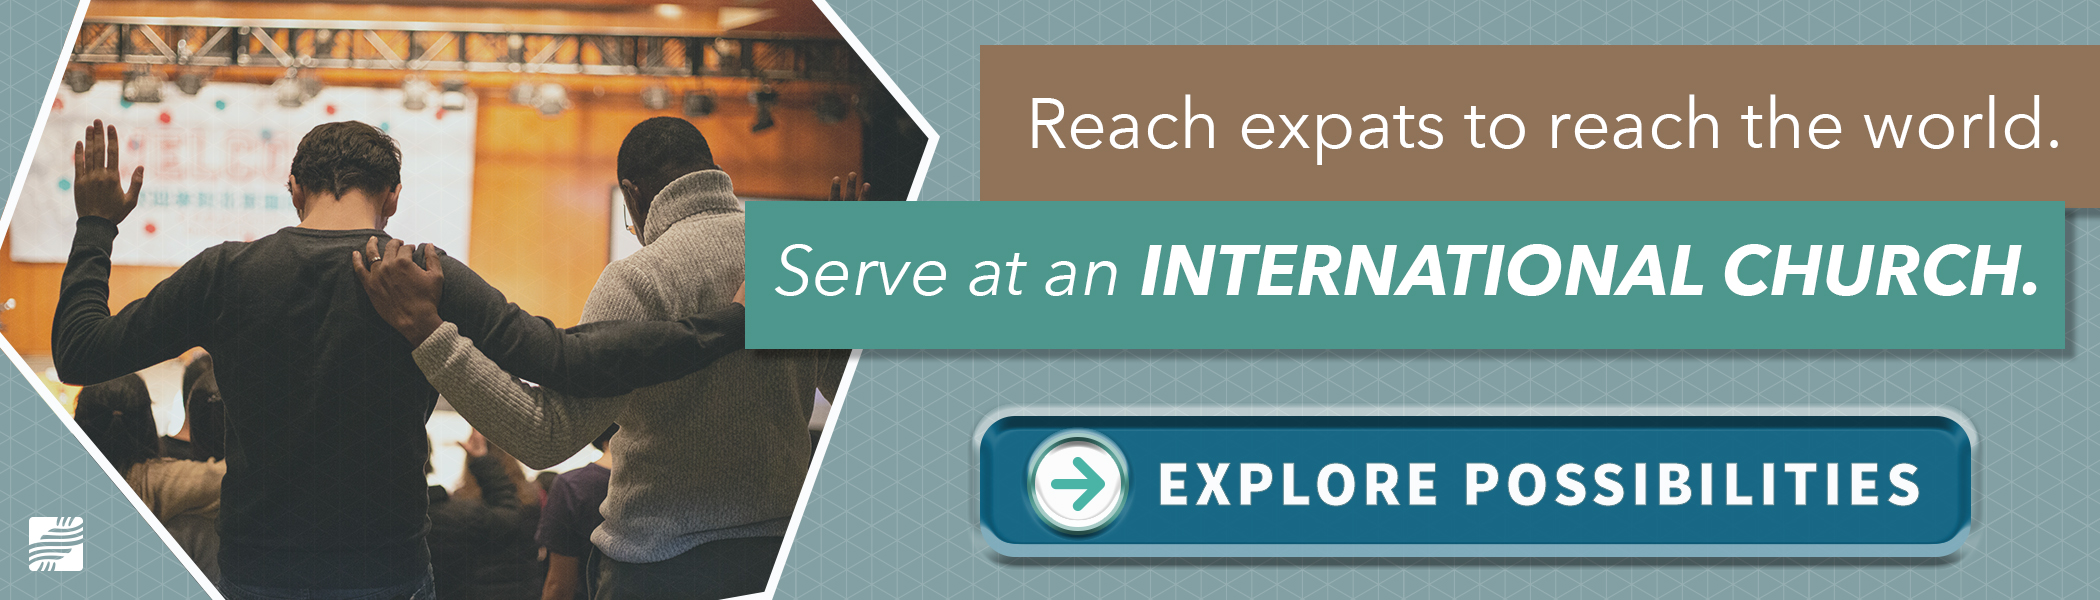 Reach expats to reach the world. Serve at an international church. Click here to explore the possibilities.